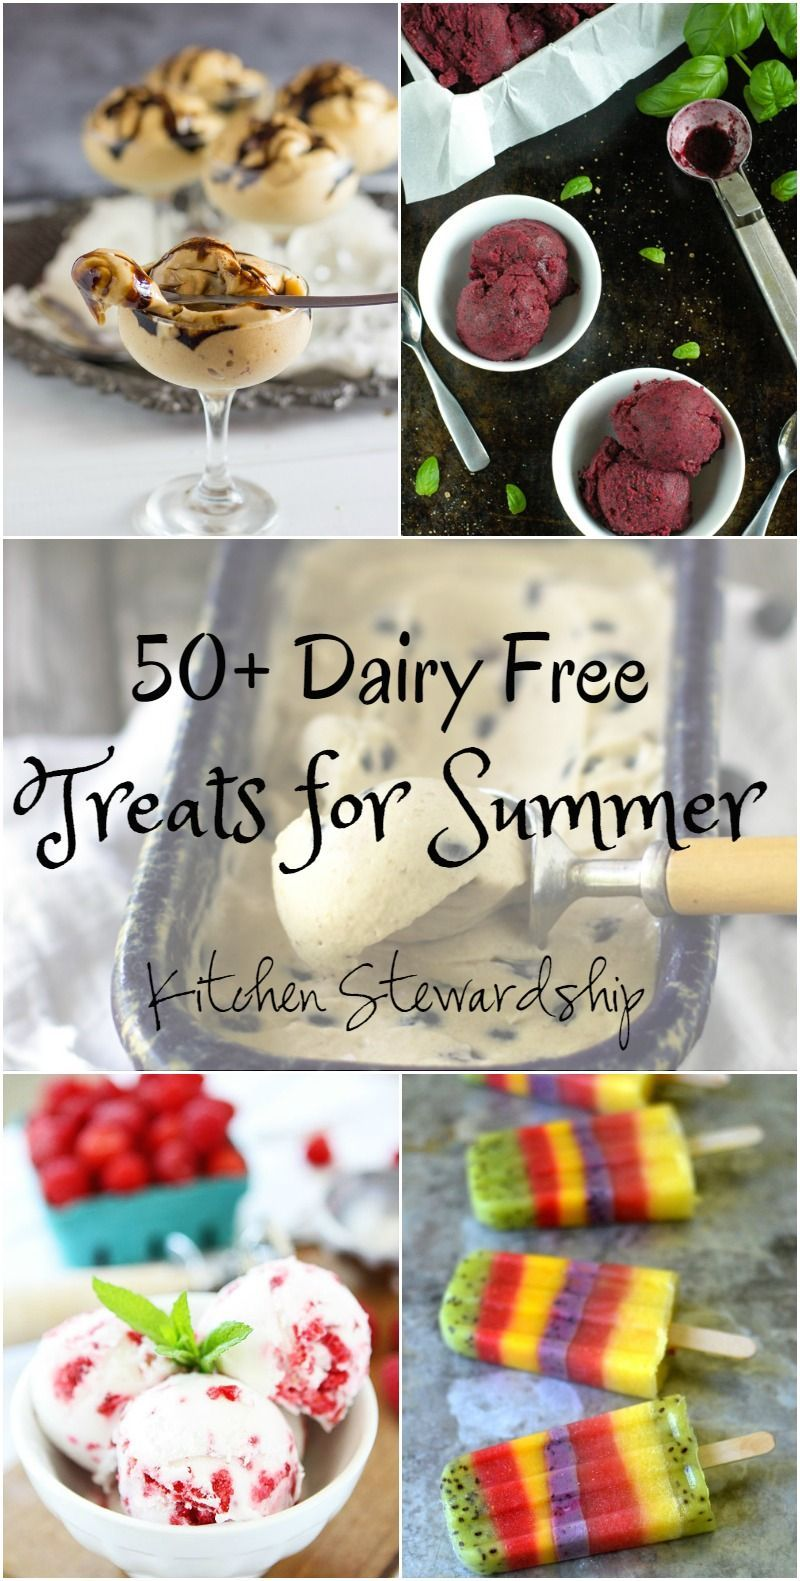 Over 50 Dairyfree Frozen Treats You Should Make and Not